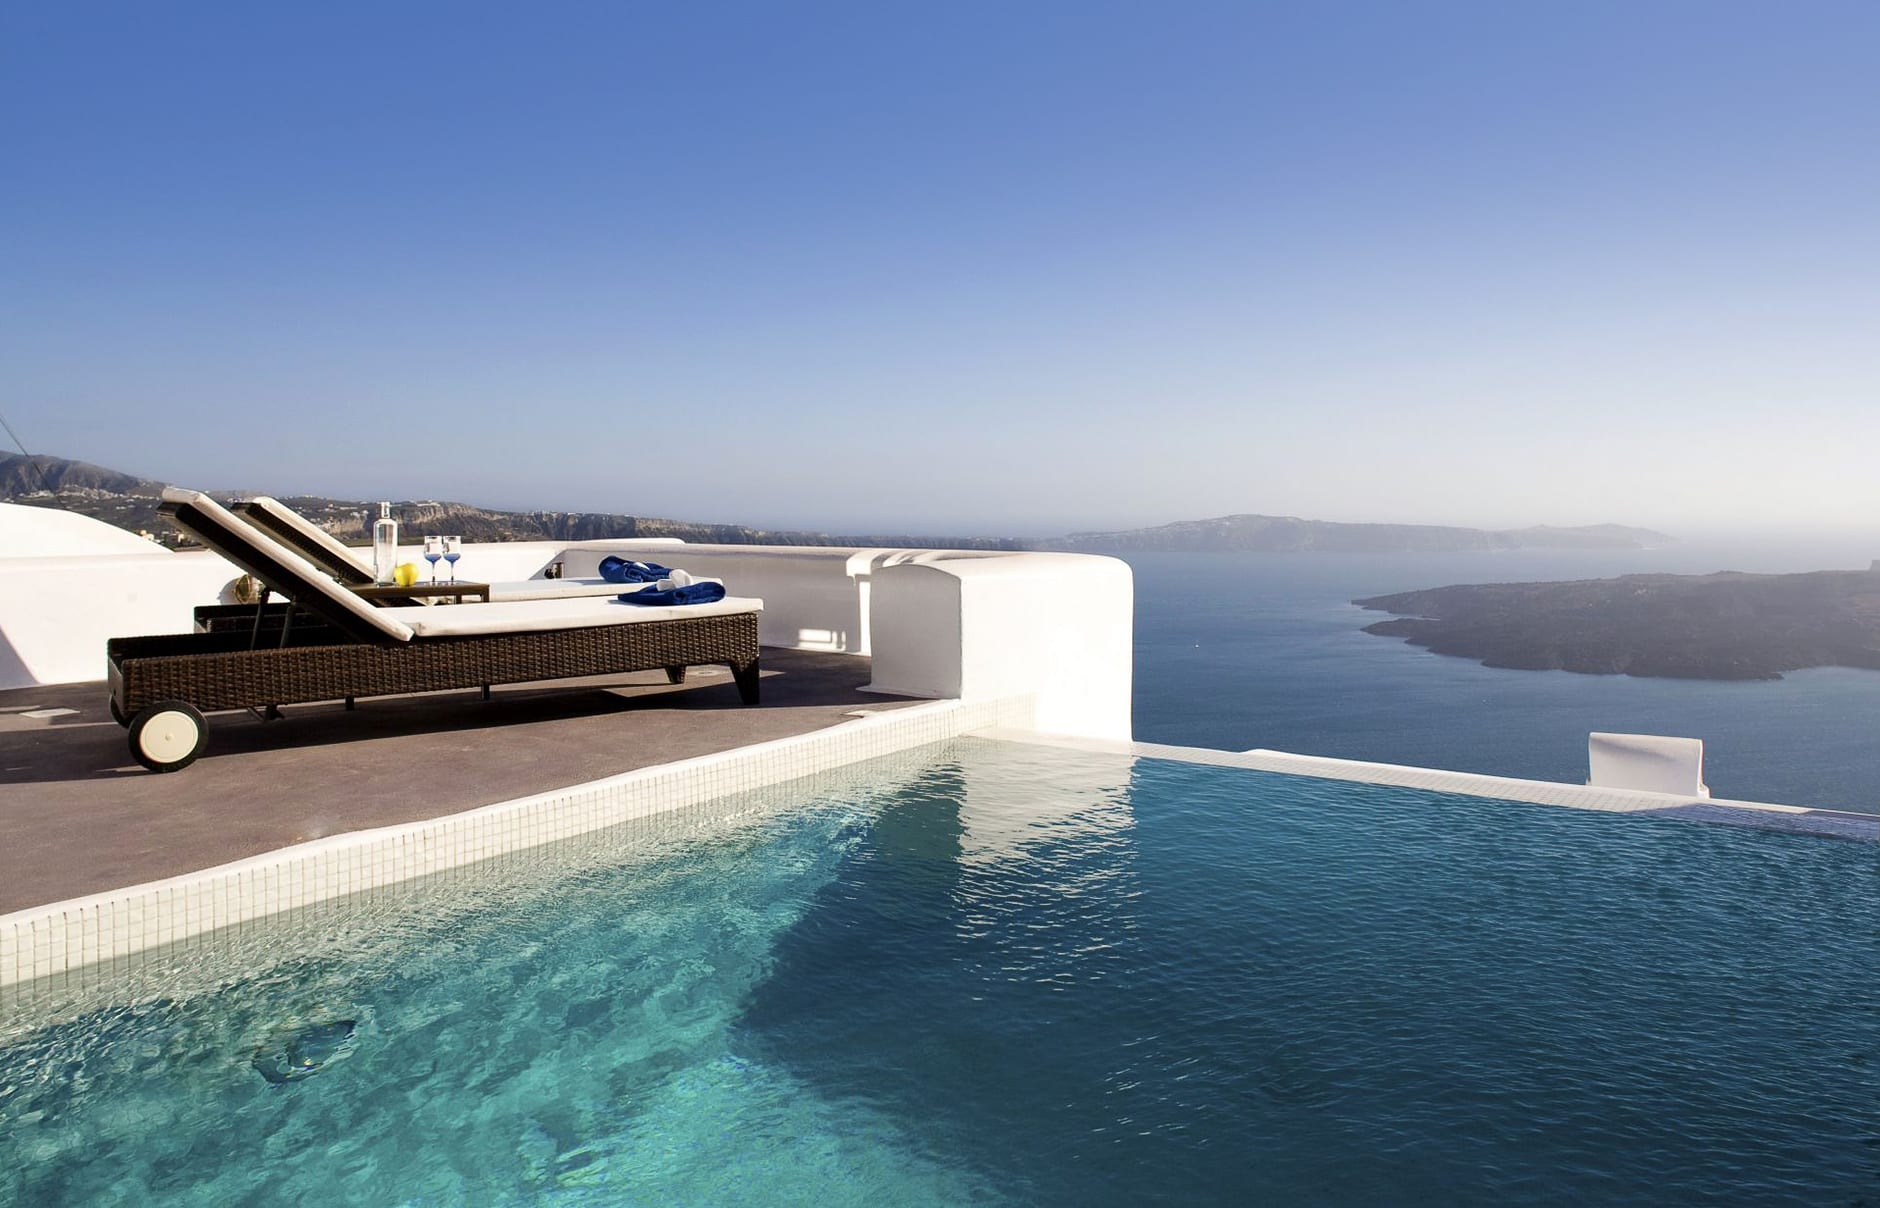 Dreams Luxury Suites, Santorini. Hotel Review by TravelPlusStyle. Photo © Dreams Luxury Suites